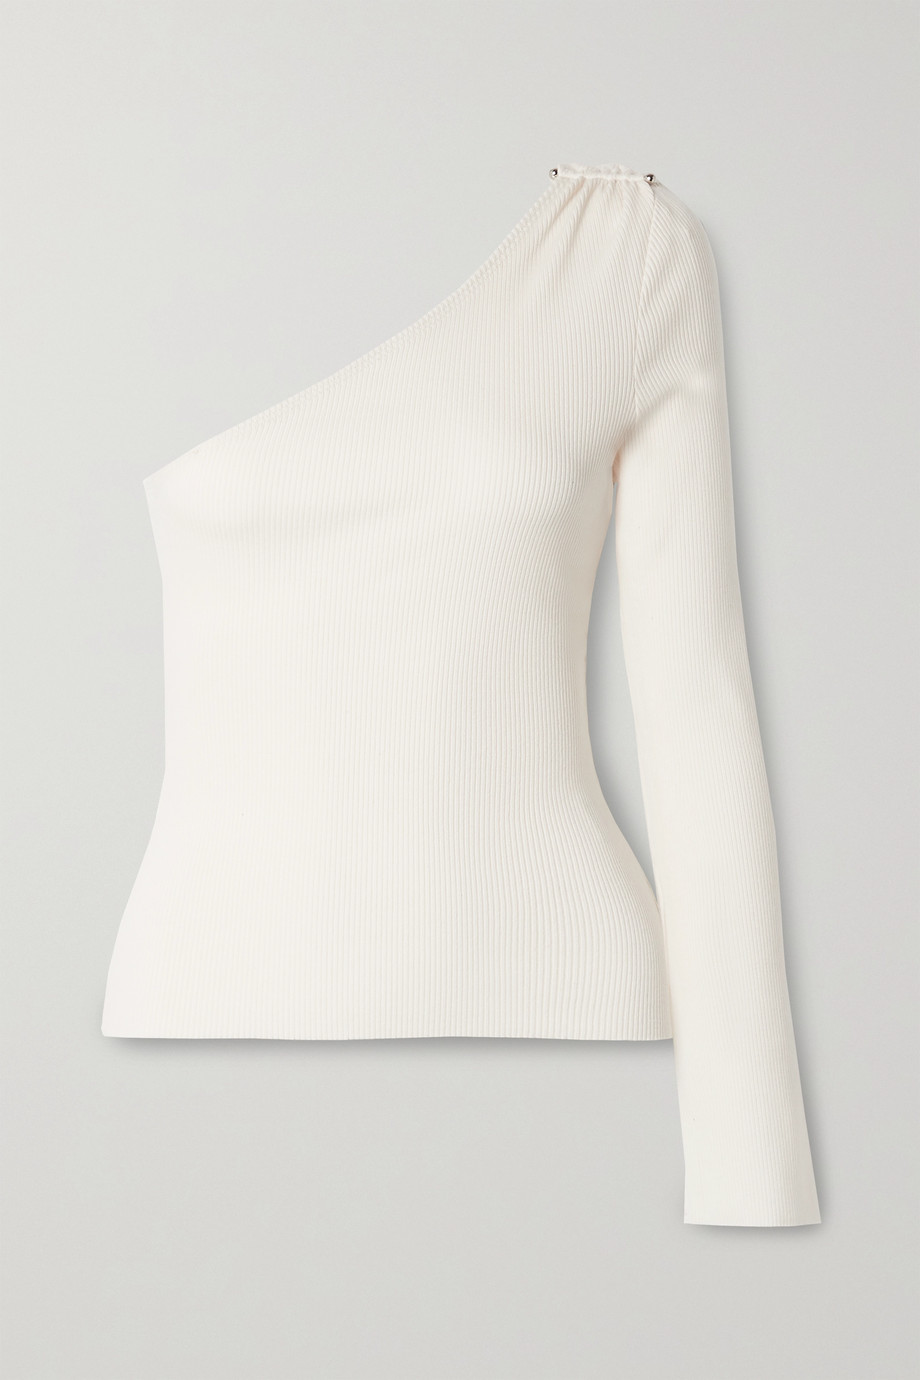 The Range Barbell one-sleeve embellished ribbed stretch TENCEL Lyocell and cotton-blend top